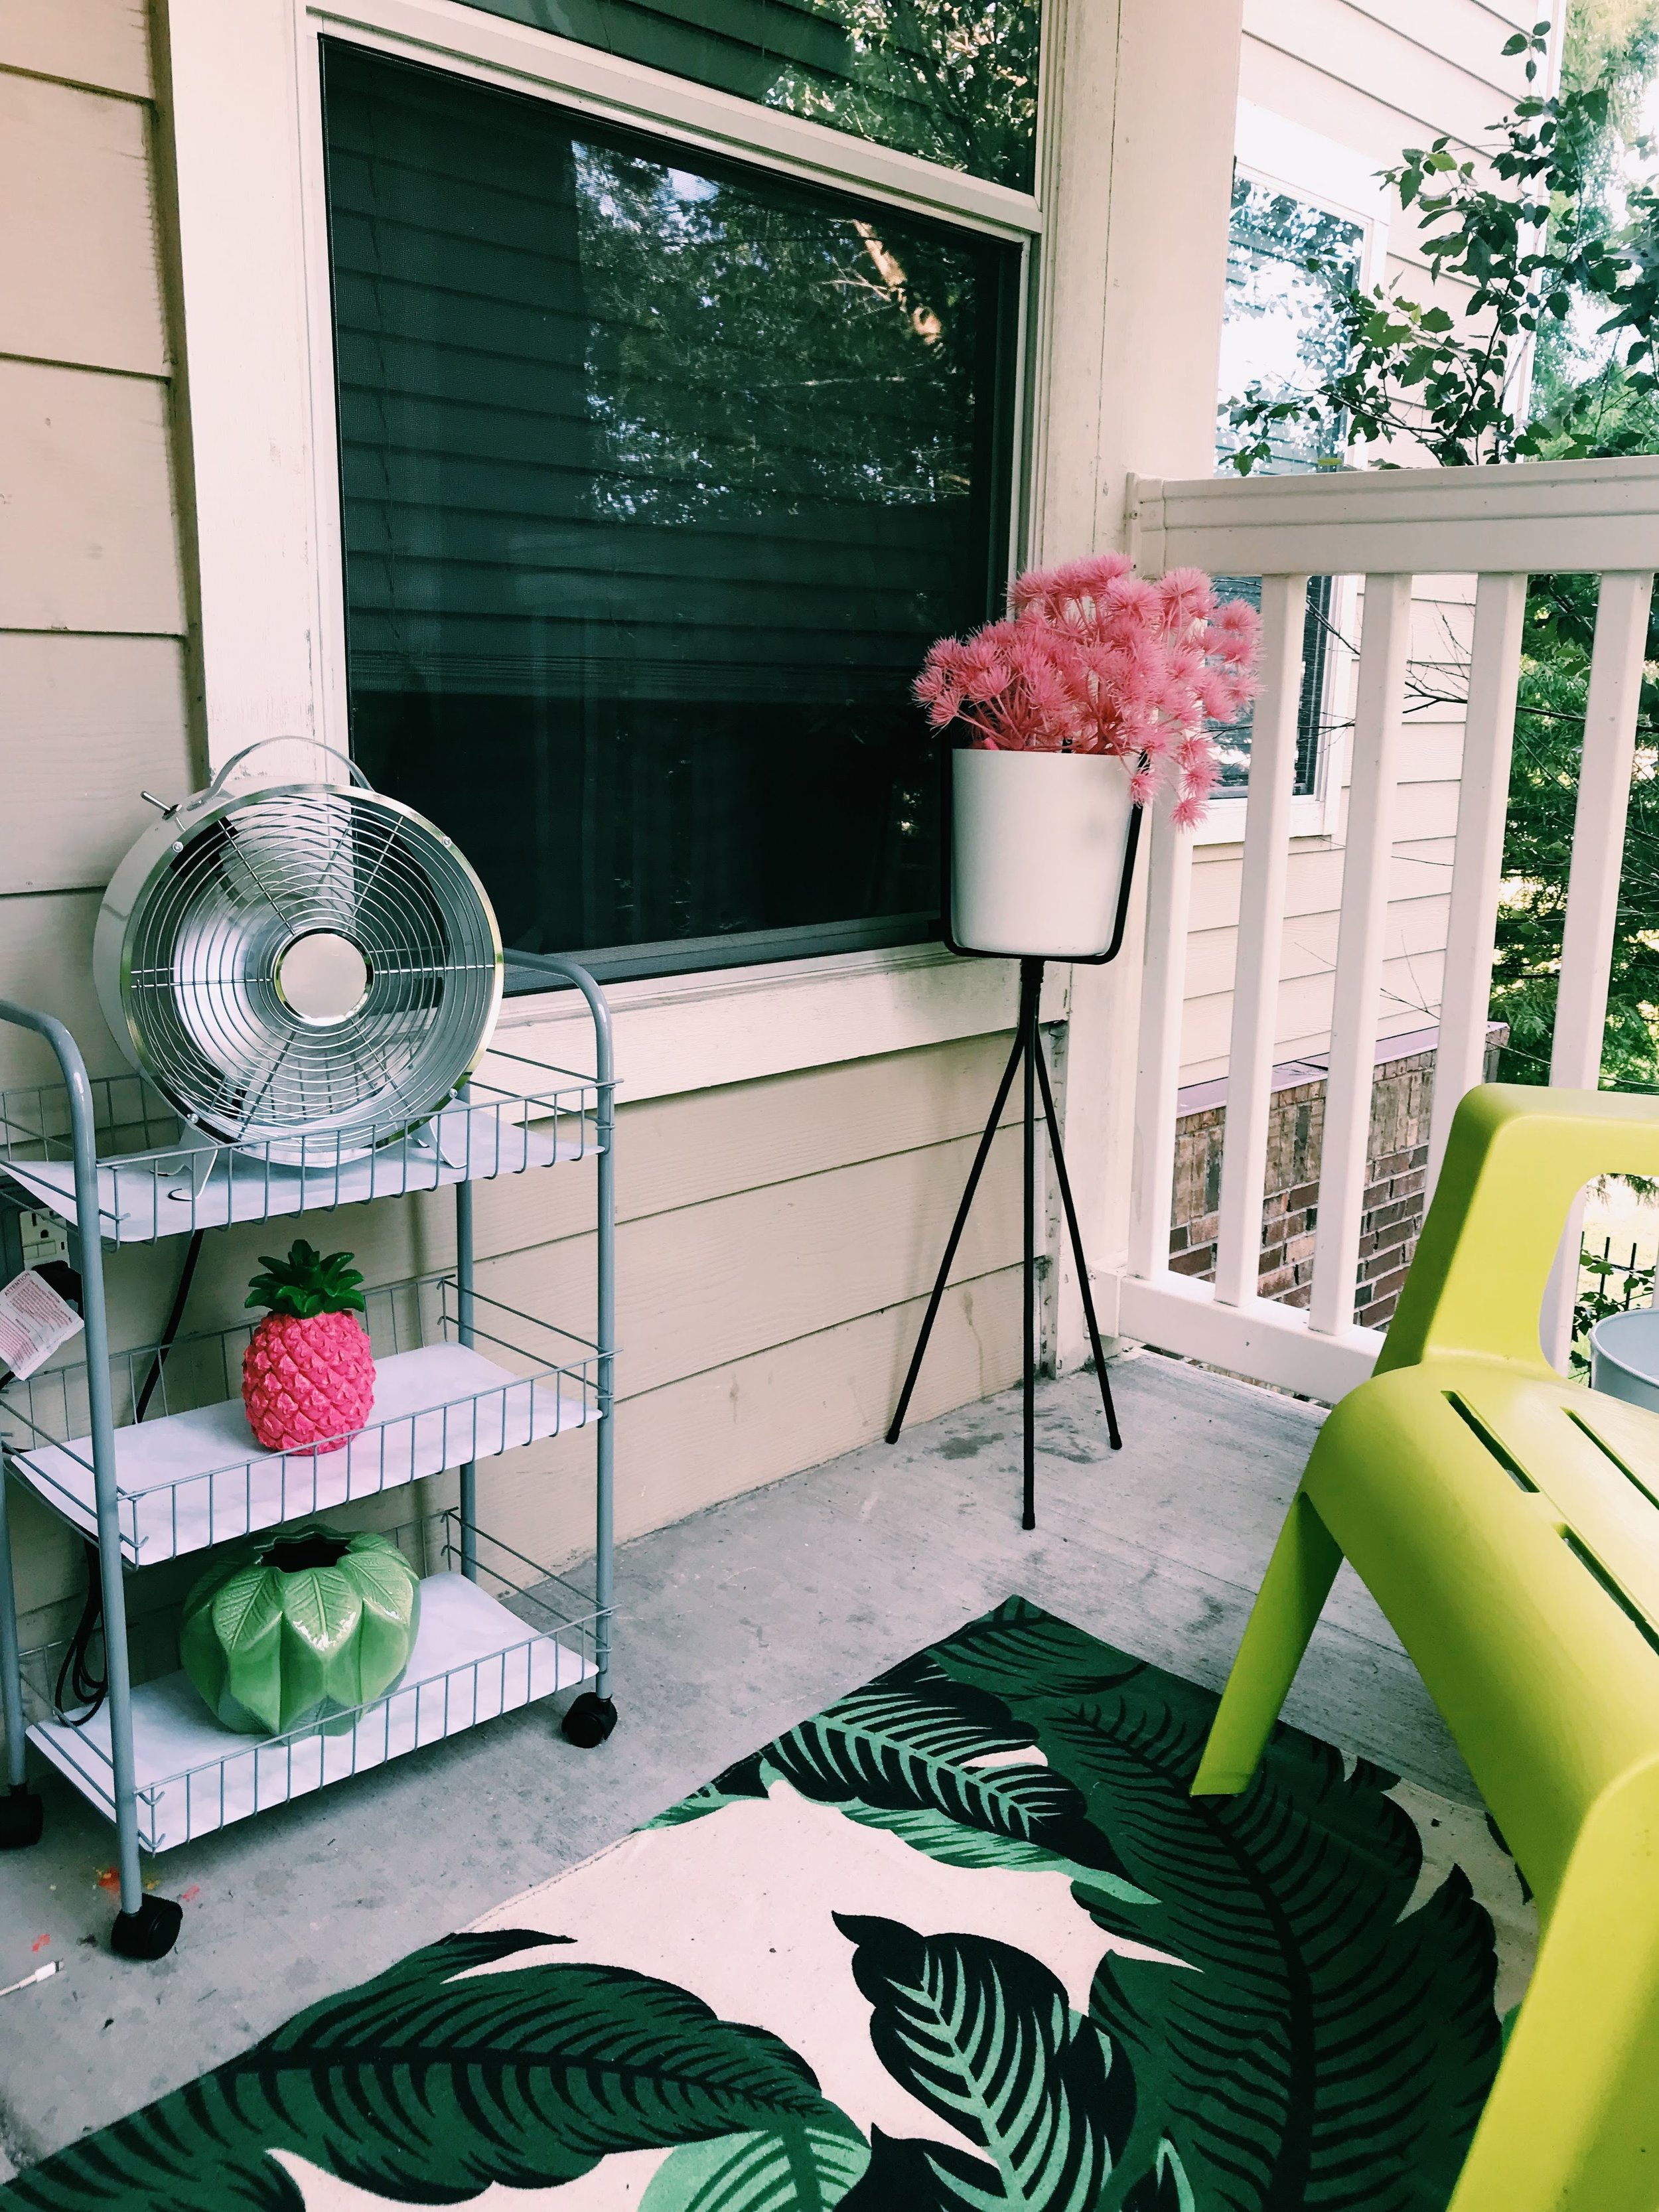 Three Heel Clicks - How to Decorate a Small Patio (7).jpg